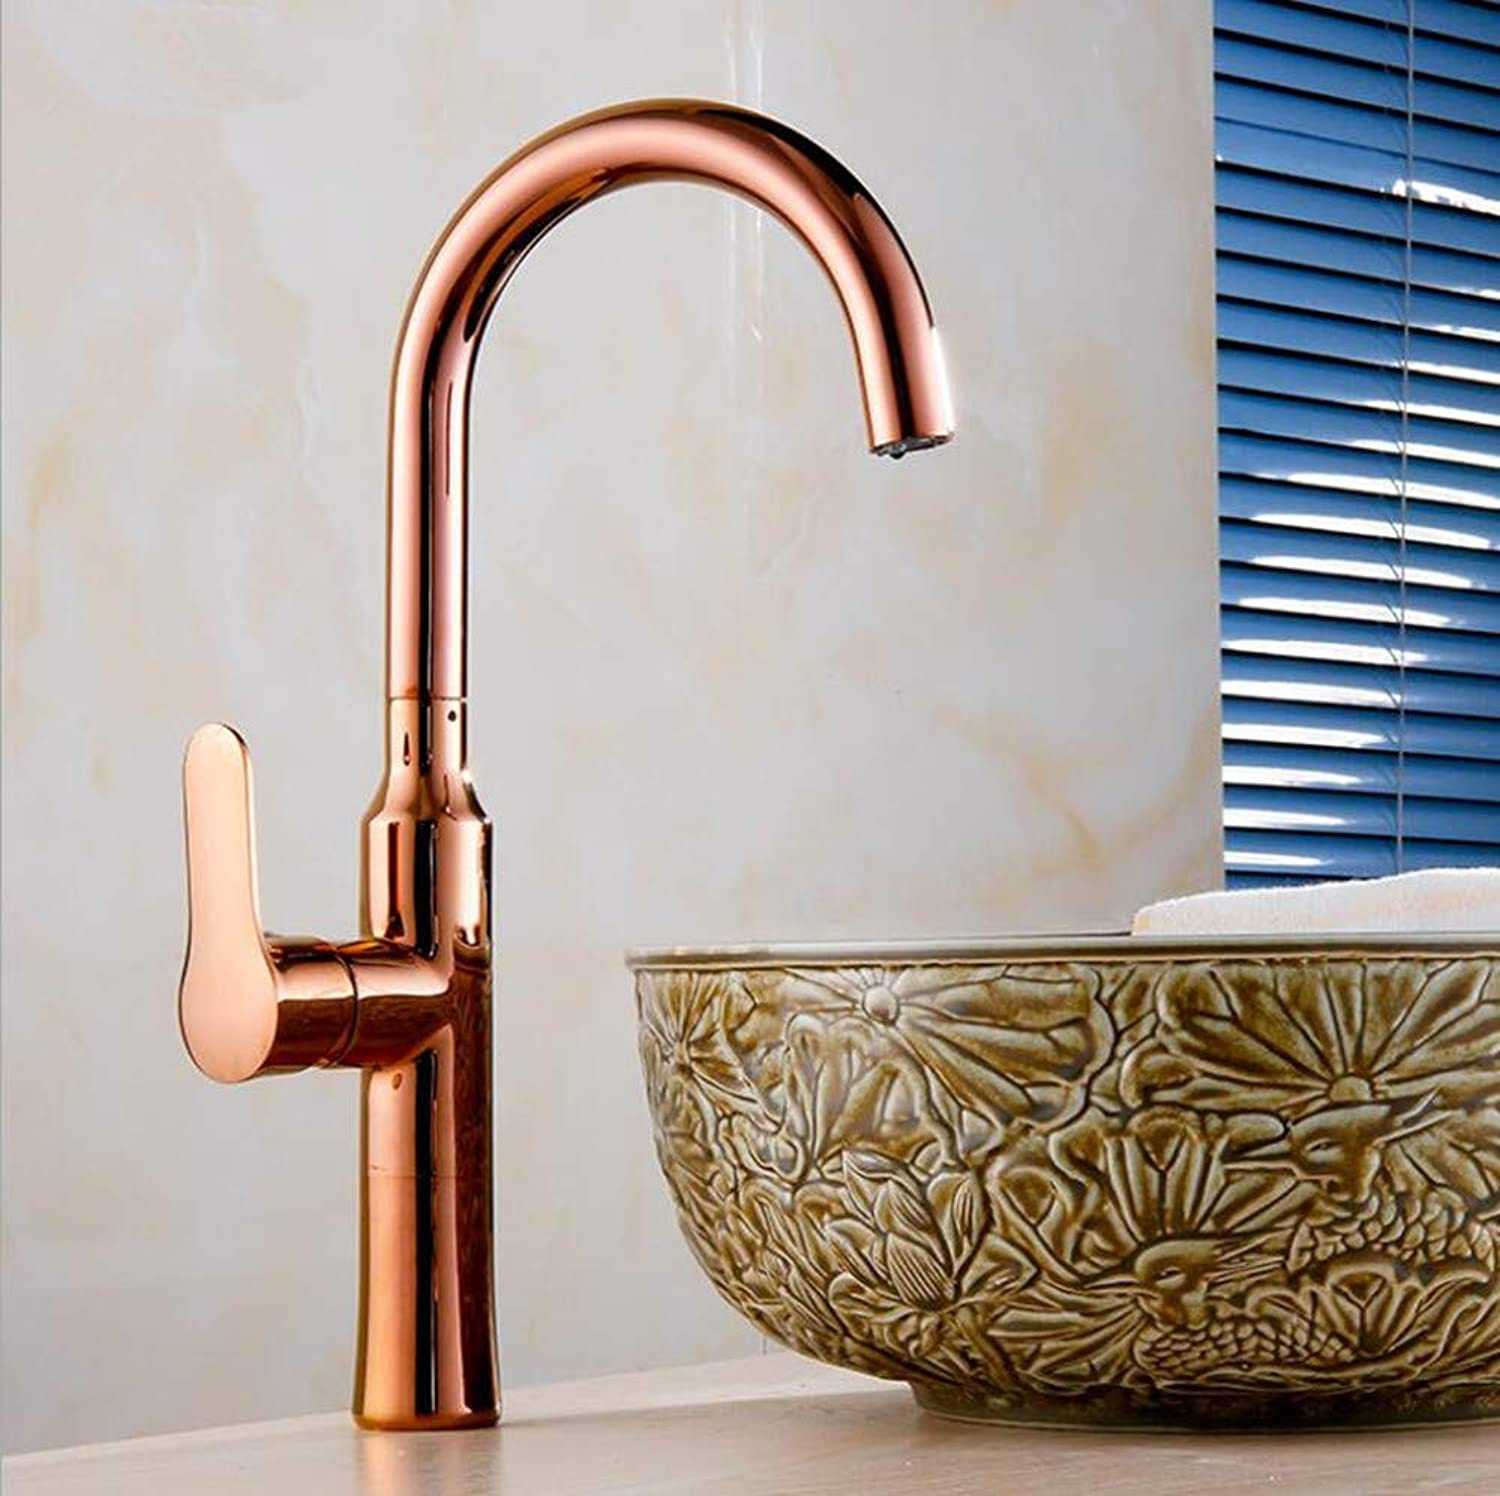 Ss Kitchen Single-handle gold-plated Faucet, European-style Copper Hot And Cold Water Mixing Sink Faucet